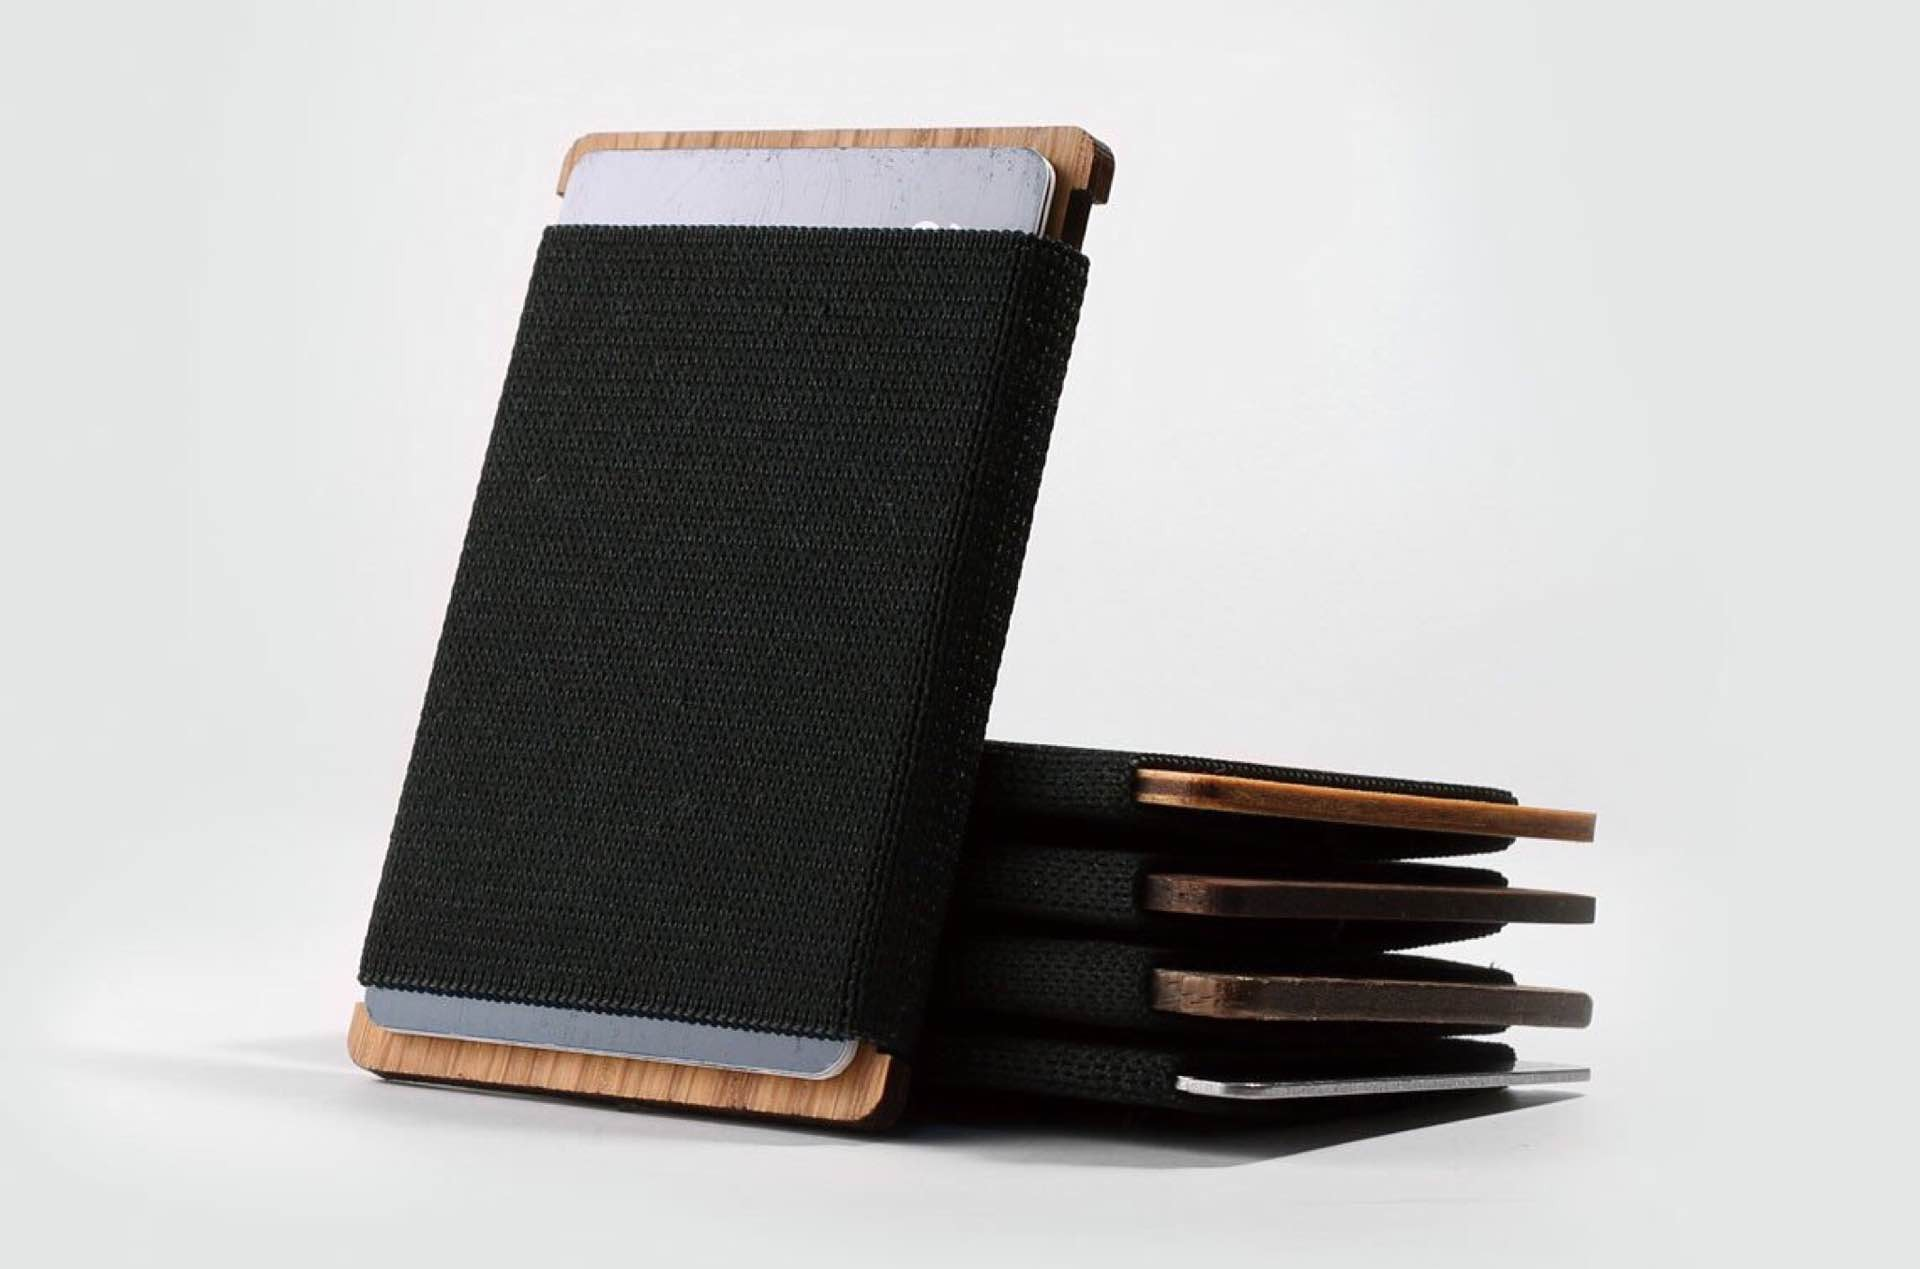 The CNCH minimalist wallet by Portsmith Company. ($30–$45)